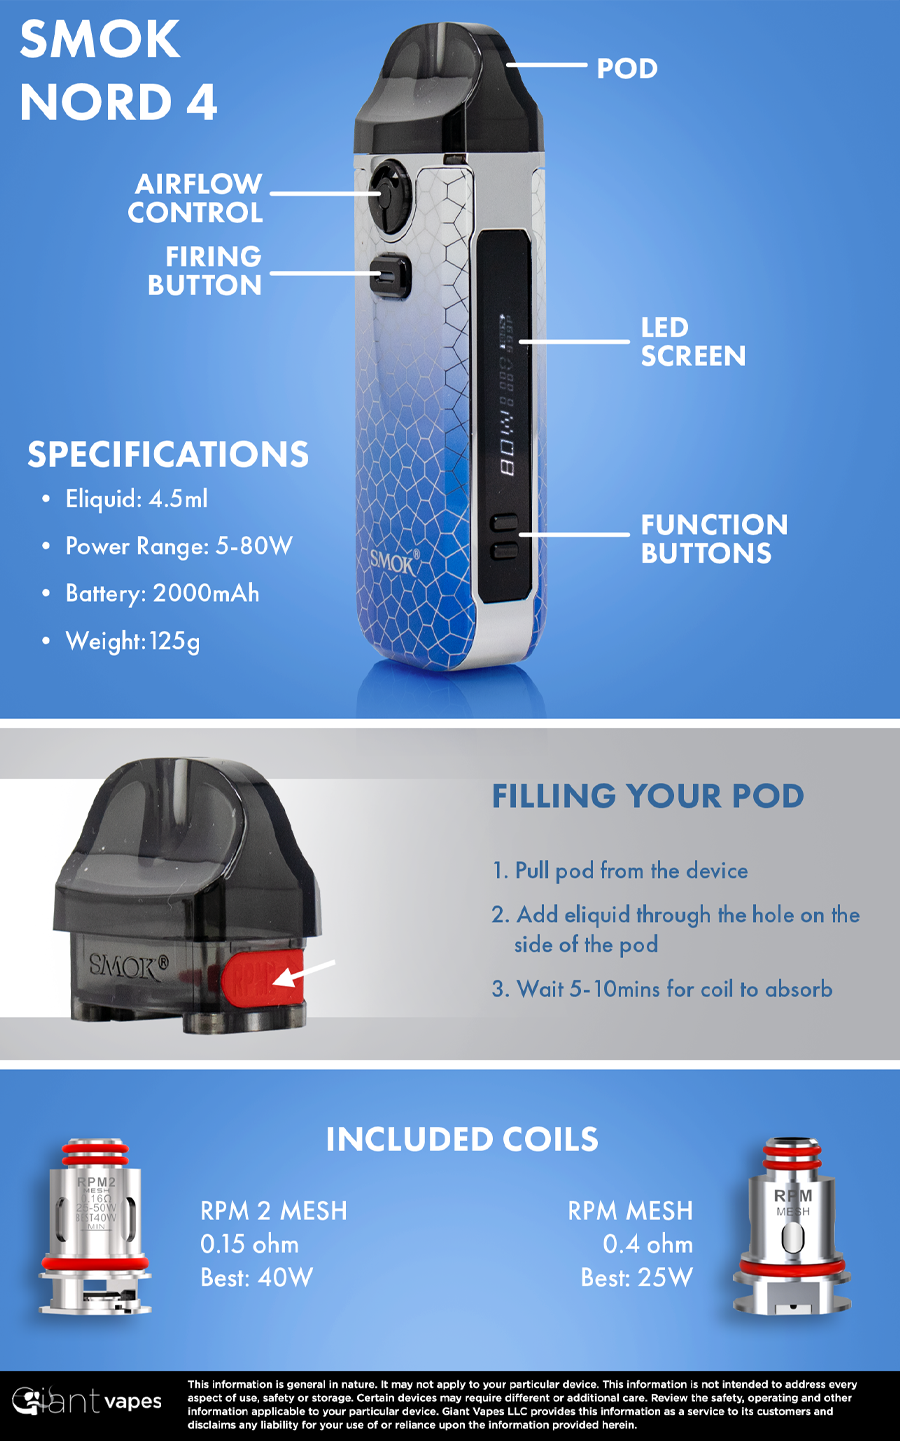 SMOK NORD 4 Kit Infographic